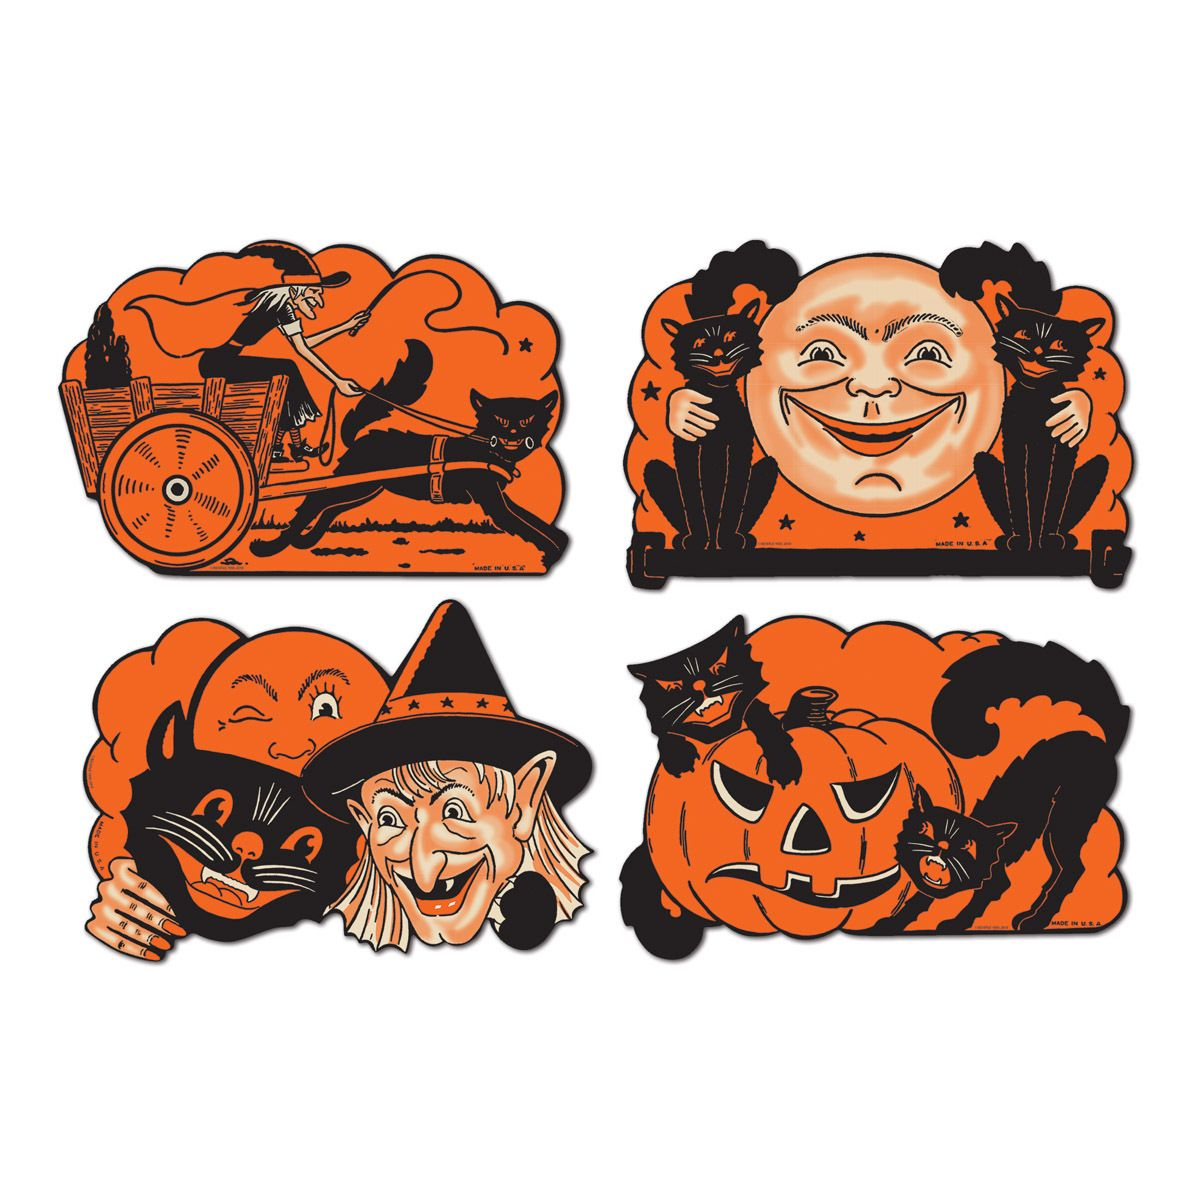 Vintage beistle halloween decorations - 4 Retro Halloween Decorations Die Cut Cutouts Vintage Beistle 1950 Reproduction Ebay